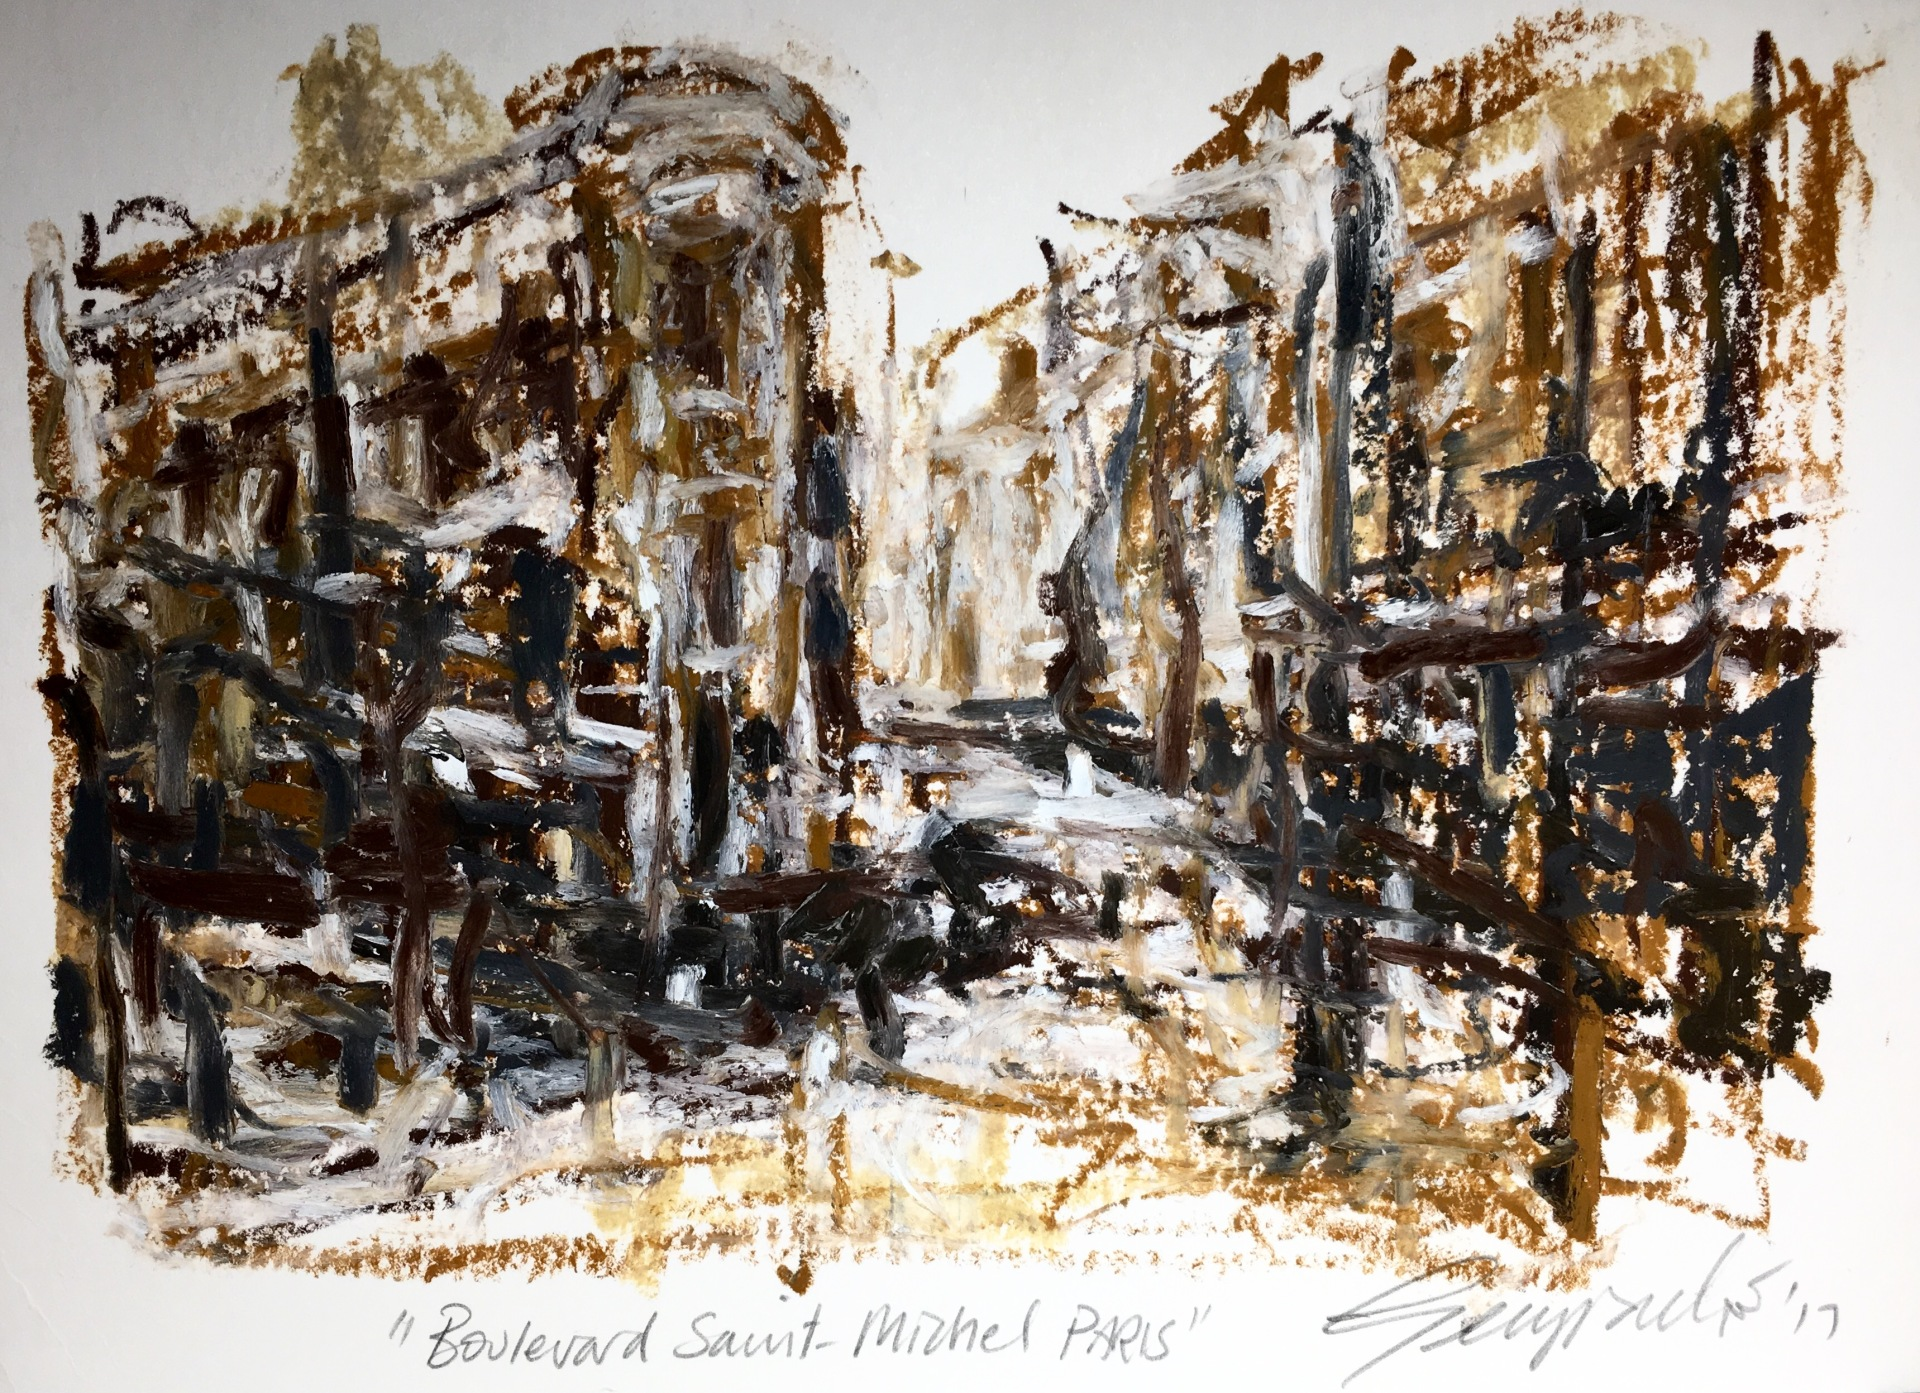 Boulevards Saint Michel Paris (SOLD)